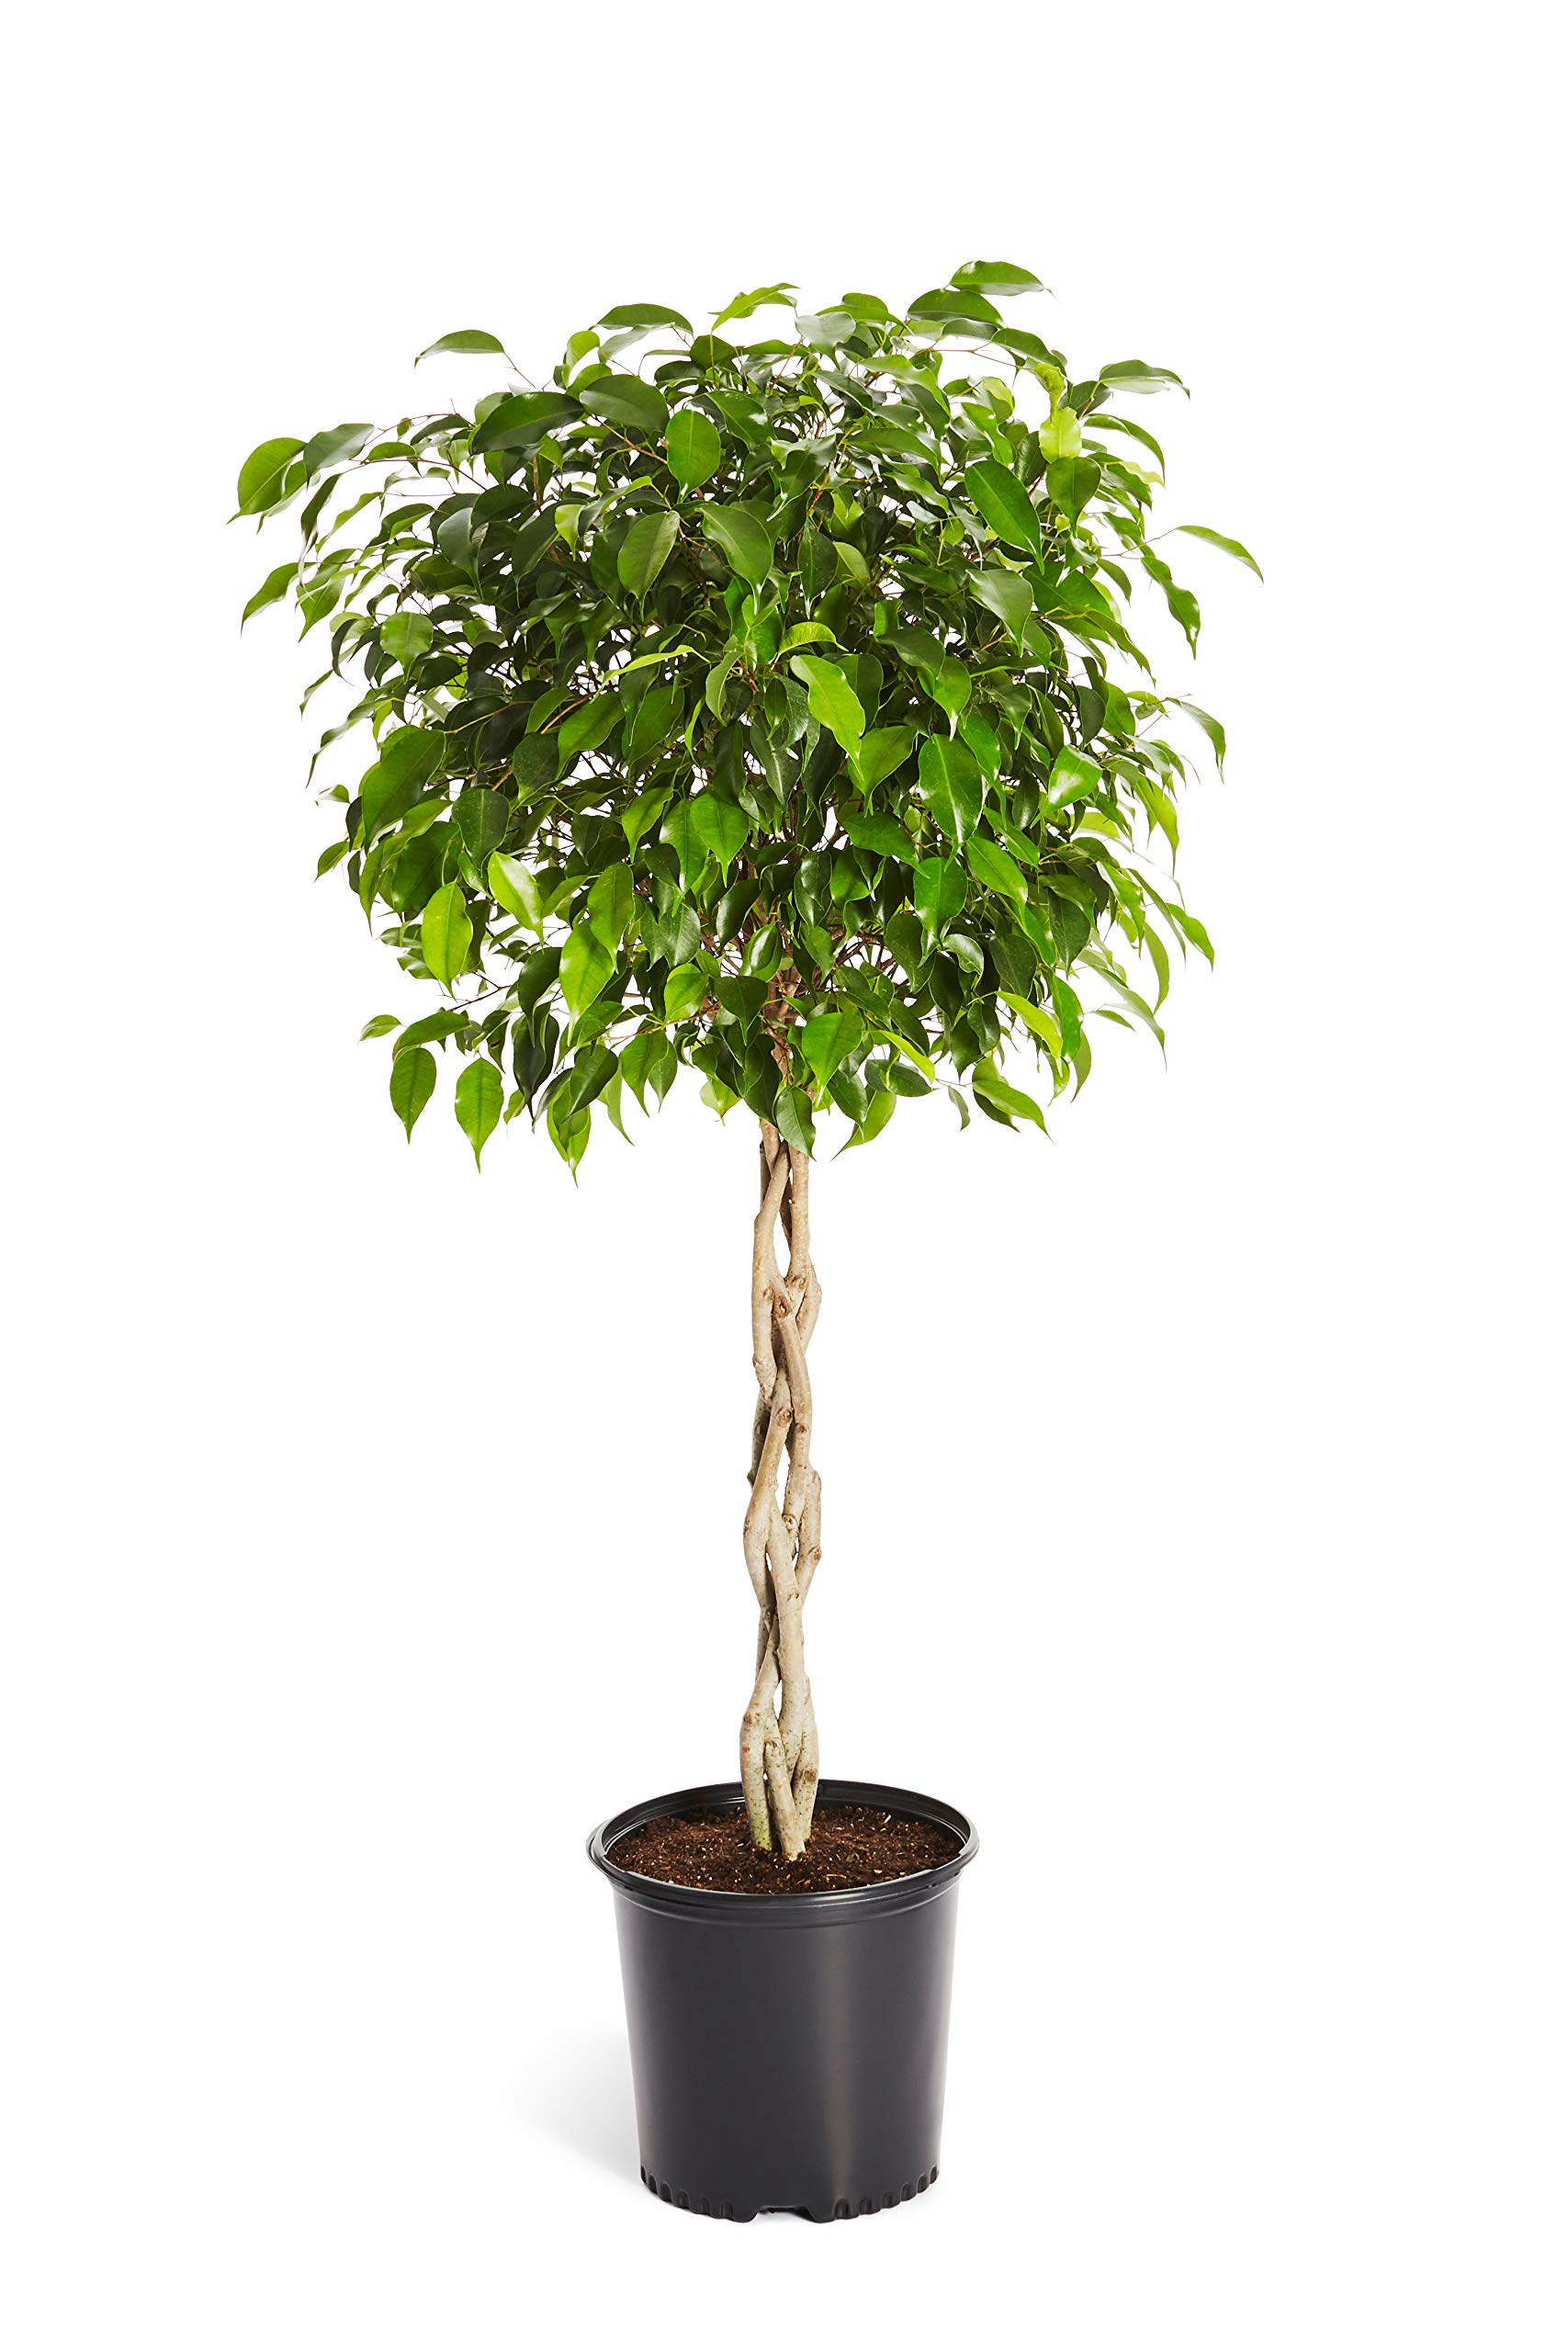 Benjamina Ficus Tree 2-3 ft. Tall - Unique Potted Tree, Perfect as a Live Patio Plants or Indoor Trees - Not Artificial Plants | No Shipping to AZ